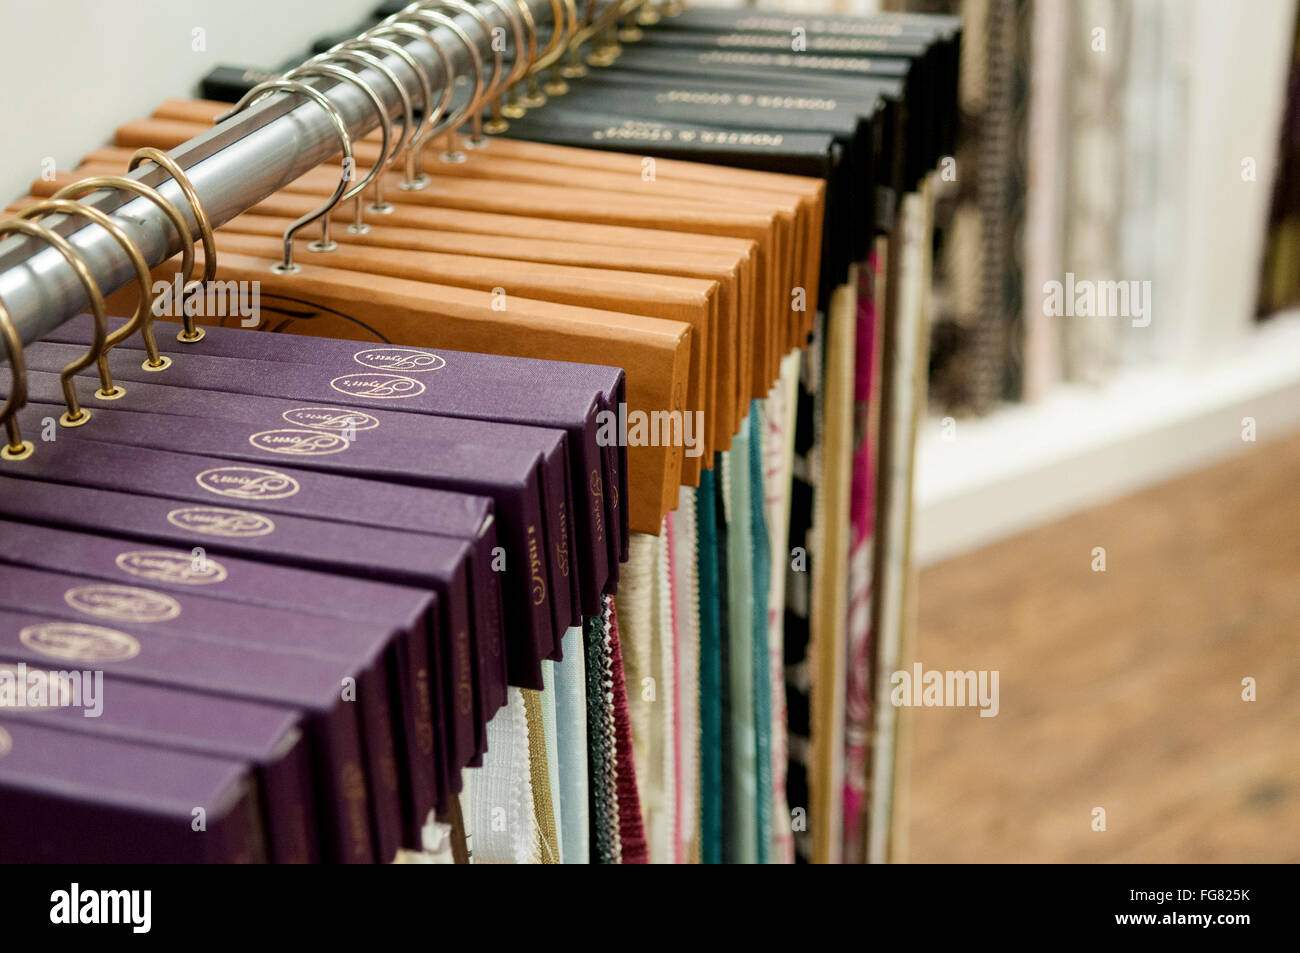 Books Of Curtain Fabric Swatches On Display In A Fabric Store.